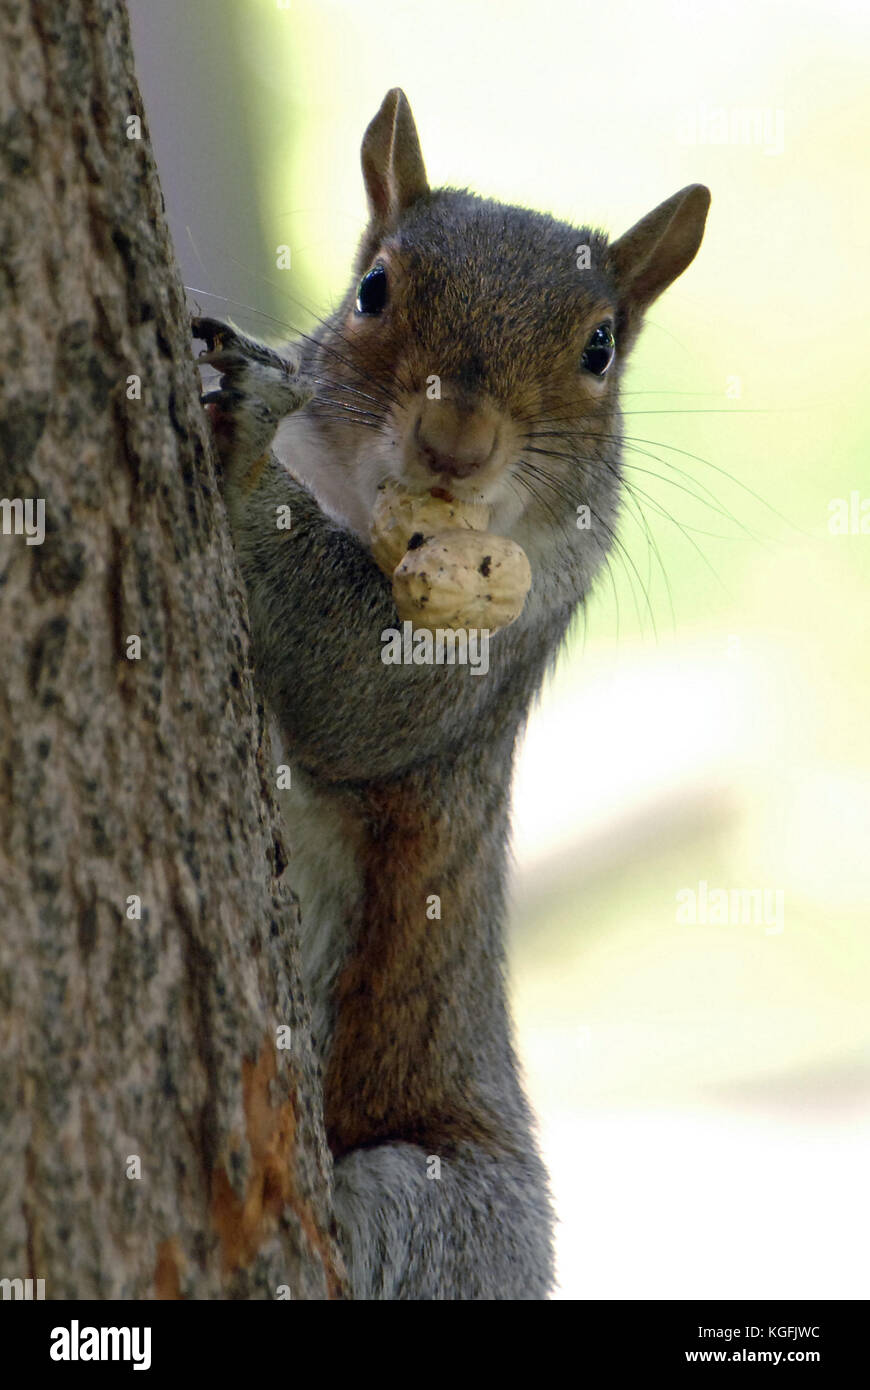 Squirrel. Philadelphia. Pennsylvania. USA. - Stock Image